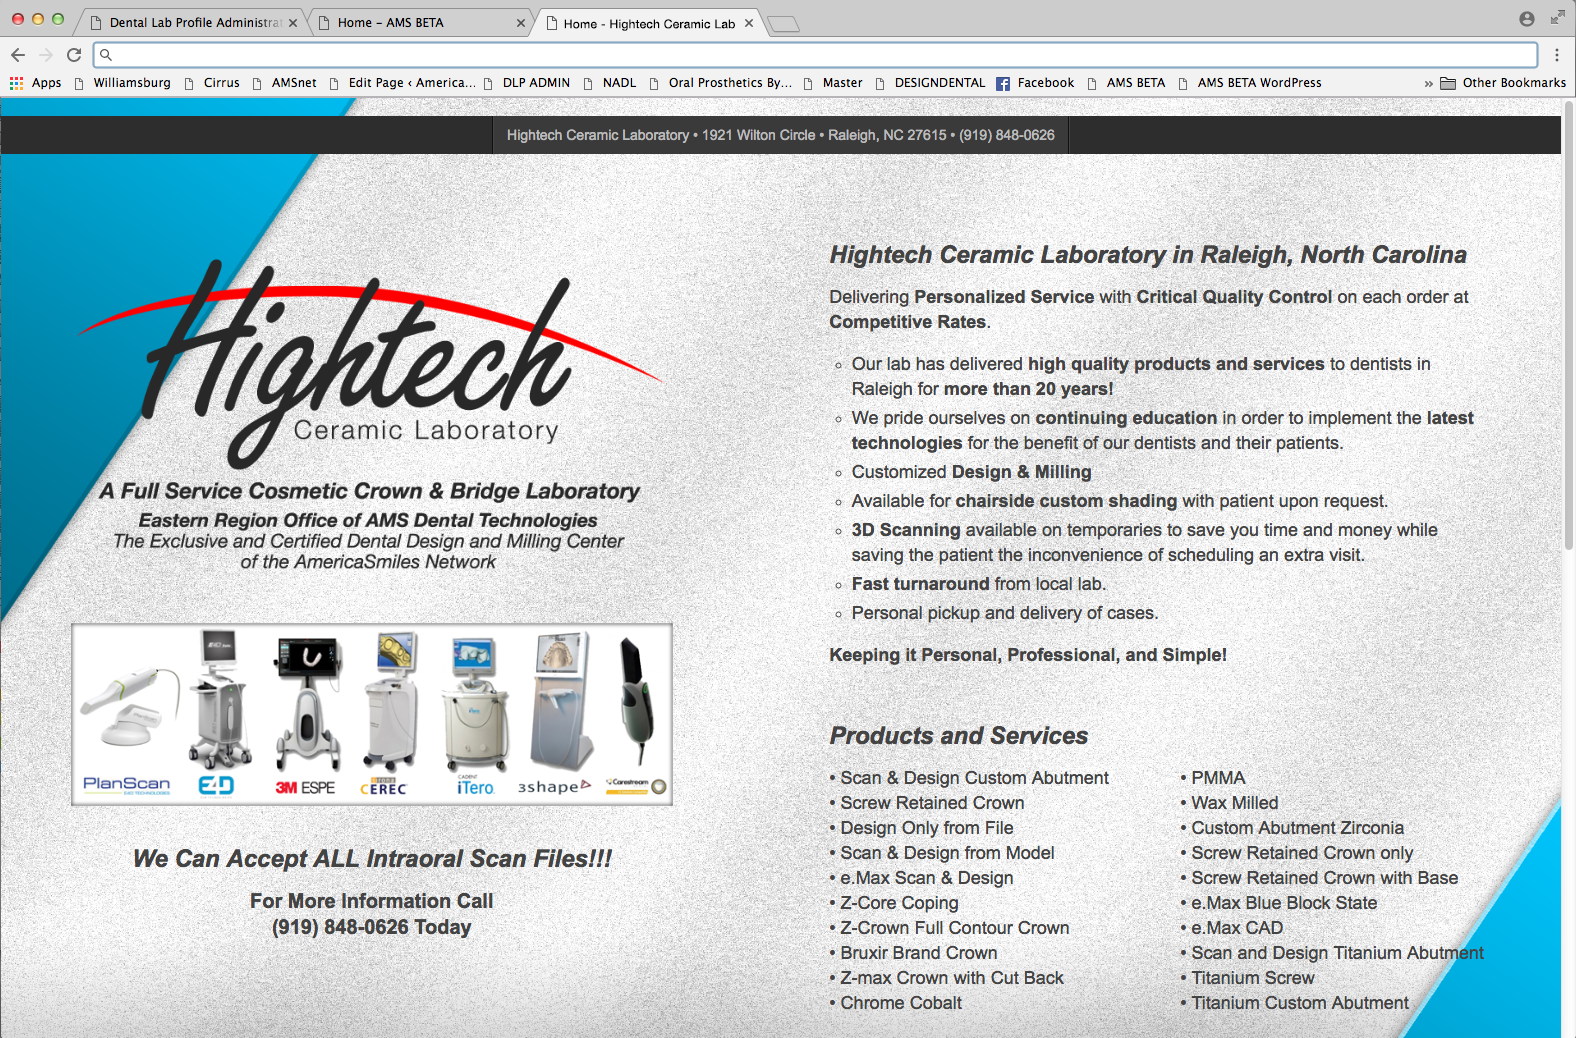 HightechCeramicLab